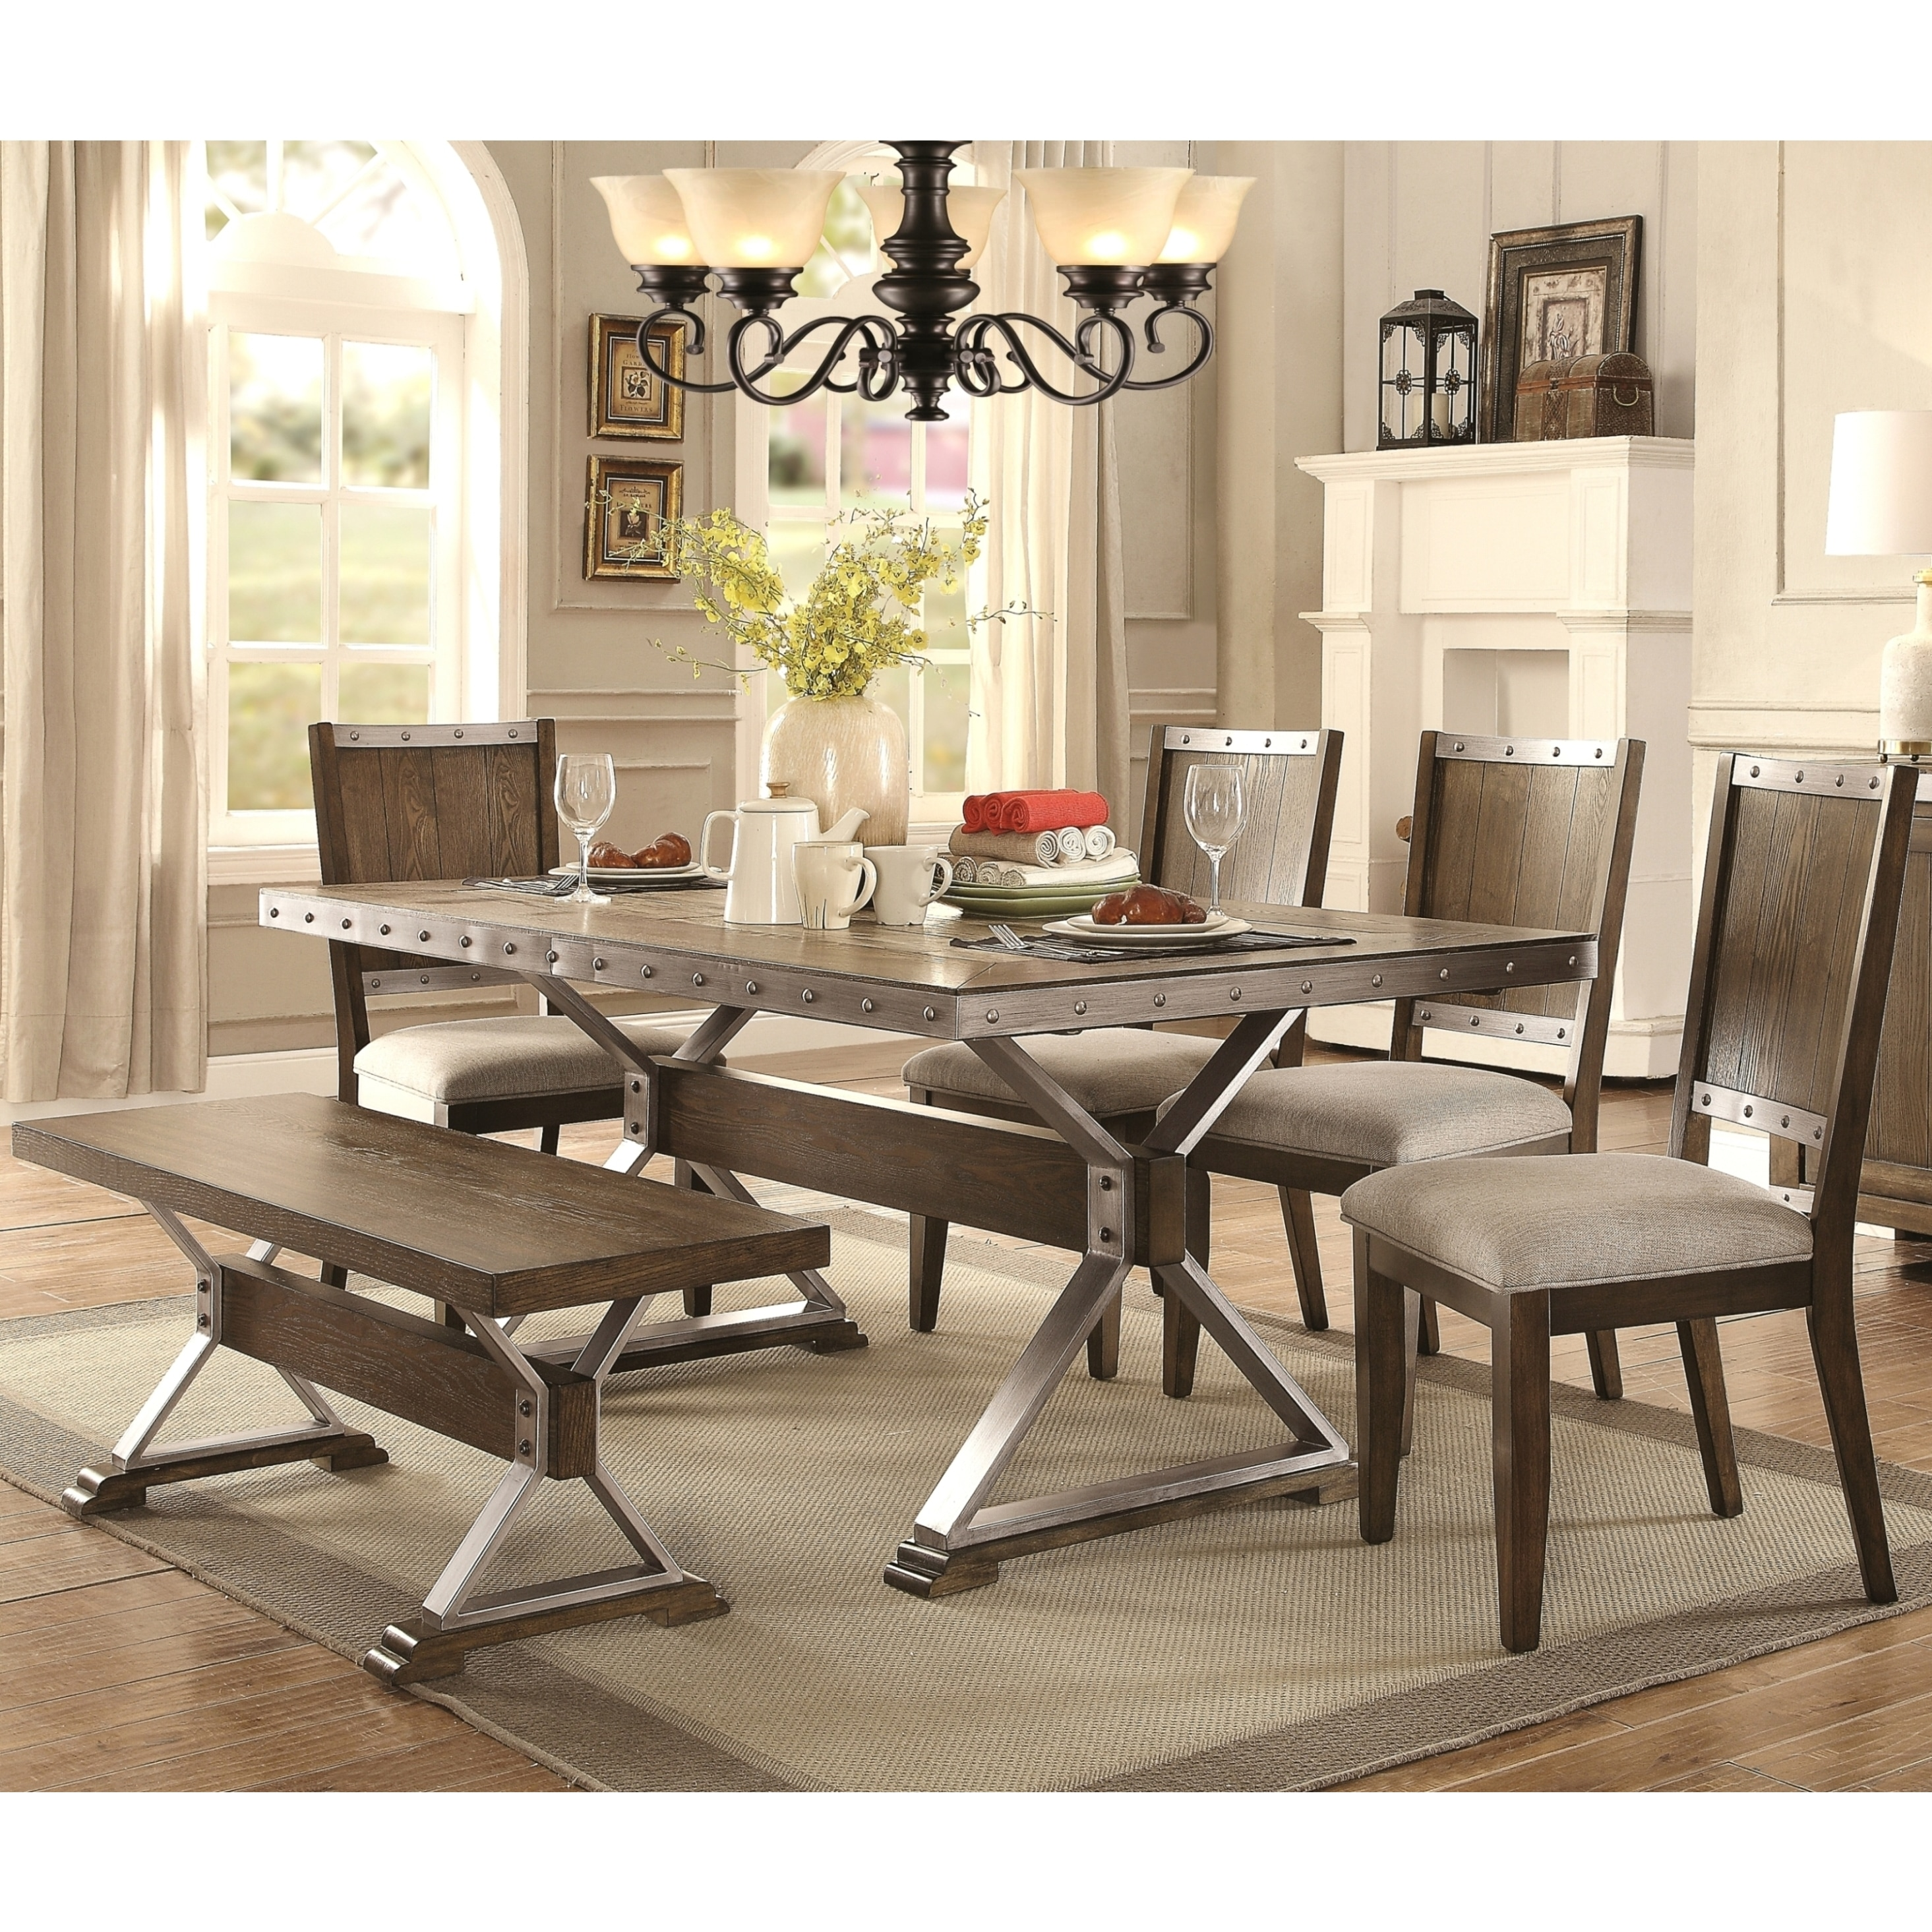 Wine Barrel Industrial Design Dining Set (1 Table, 4 Chai...